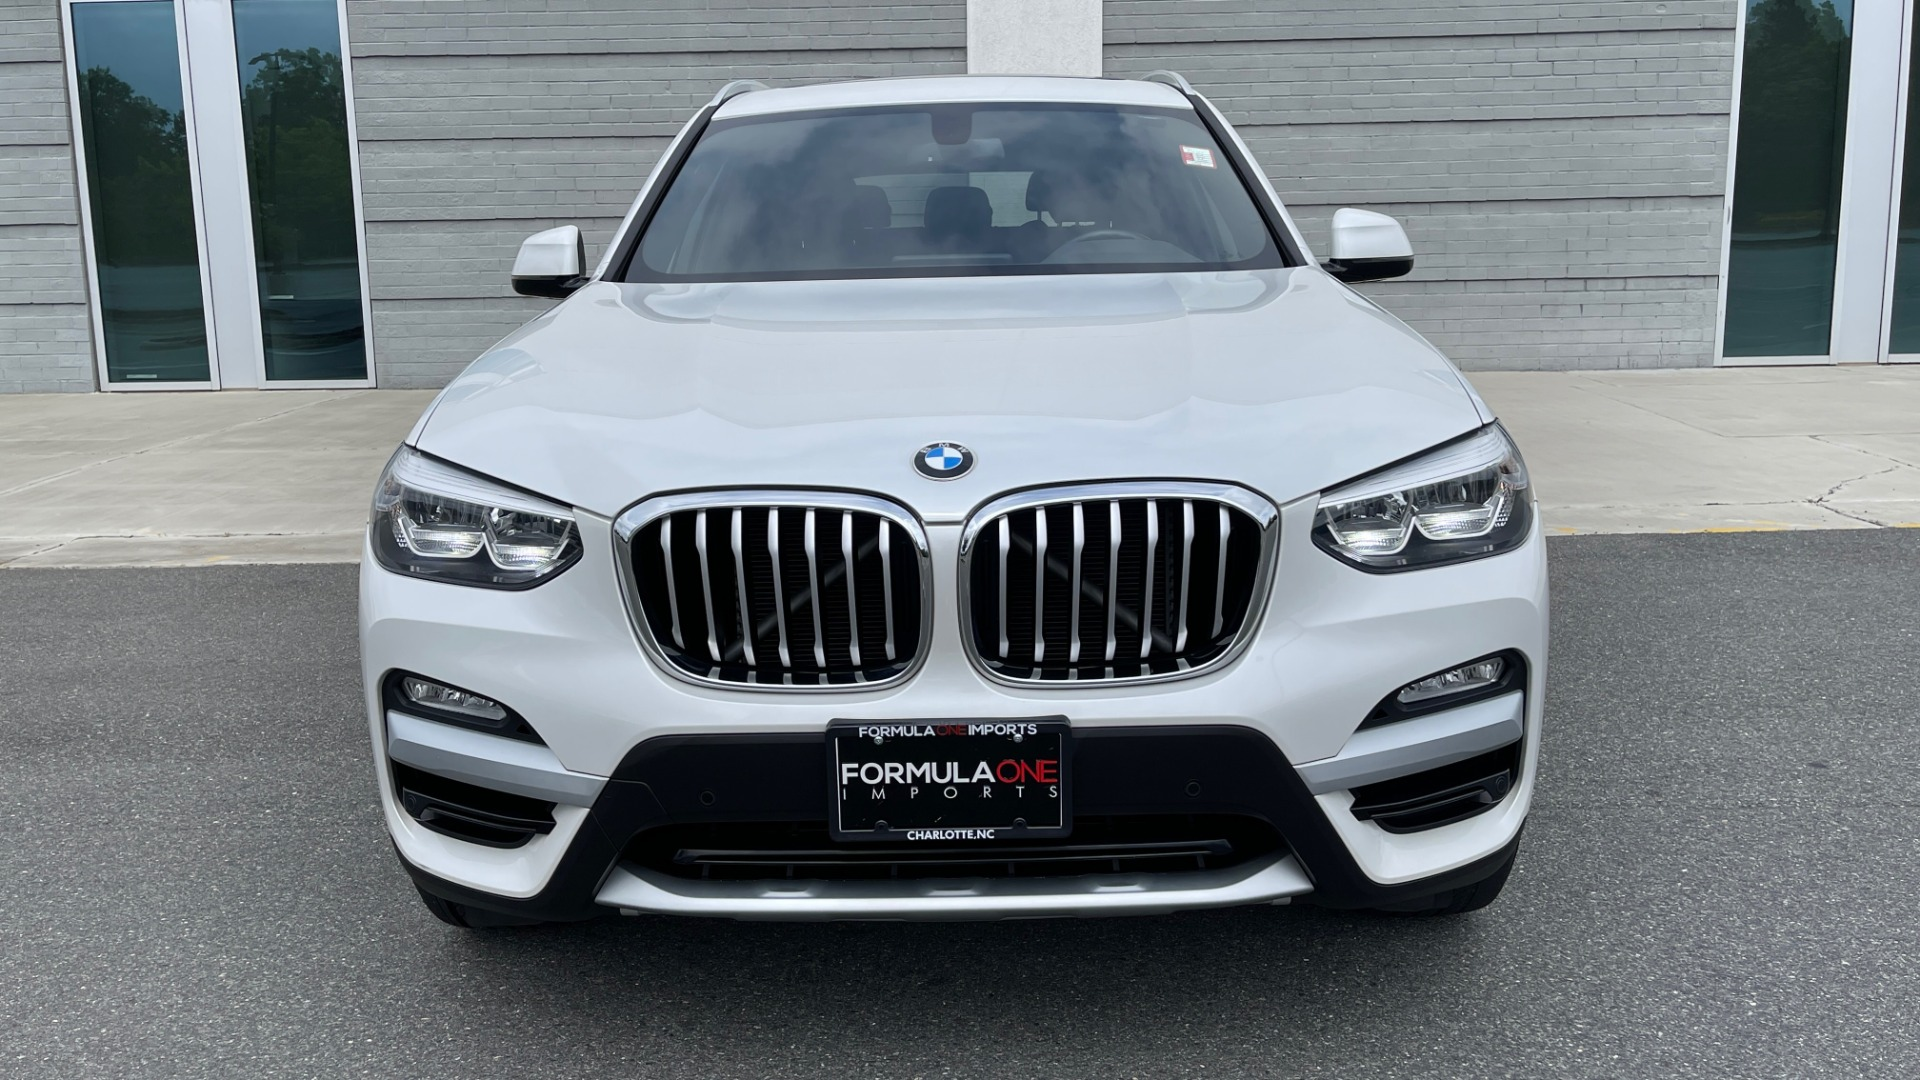 Used 2018 BMW X3 XDRIVE30I / NAV / PANO-ROOF / HTD STS / PARK DIST CNTRL / REARVIEW for sale $38,995 at Formula Imports in Charlotte NC 28227 11